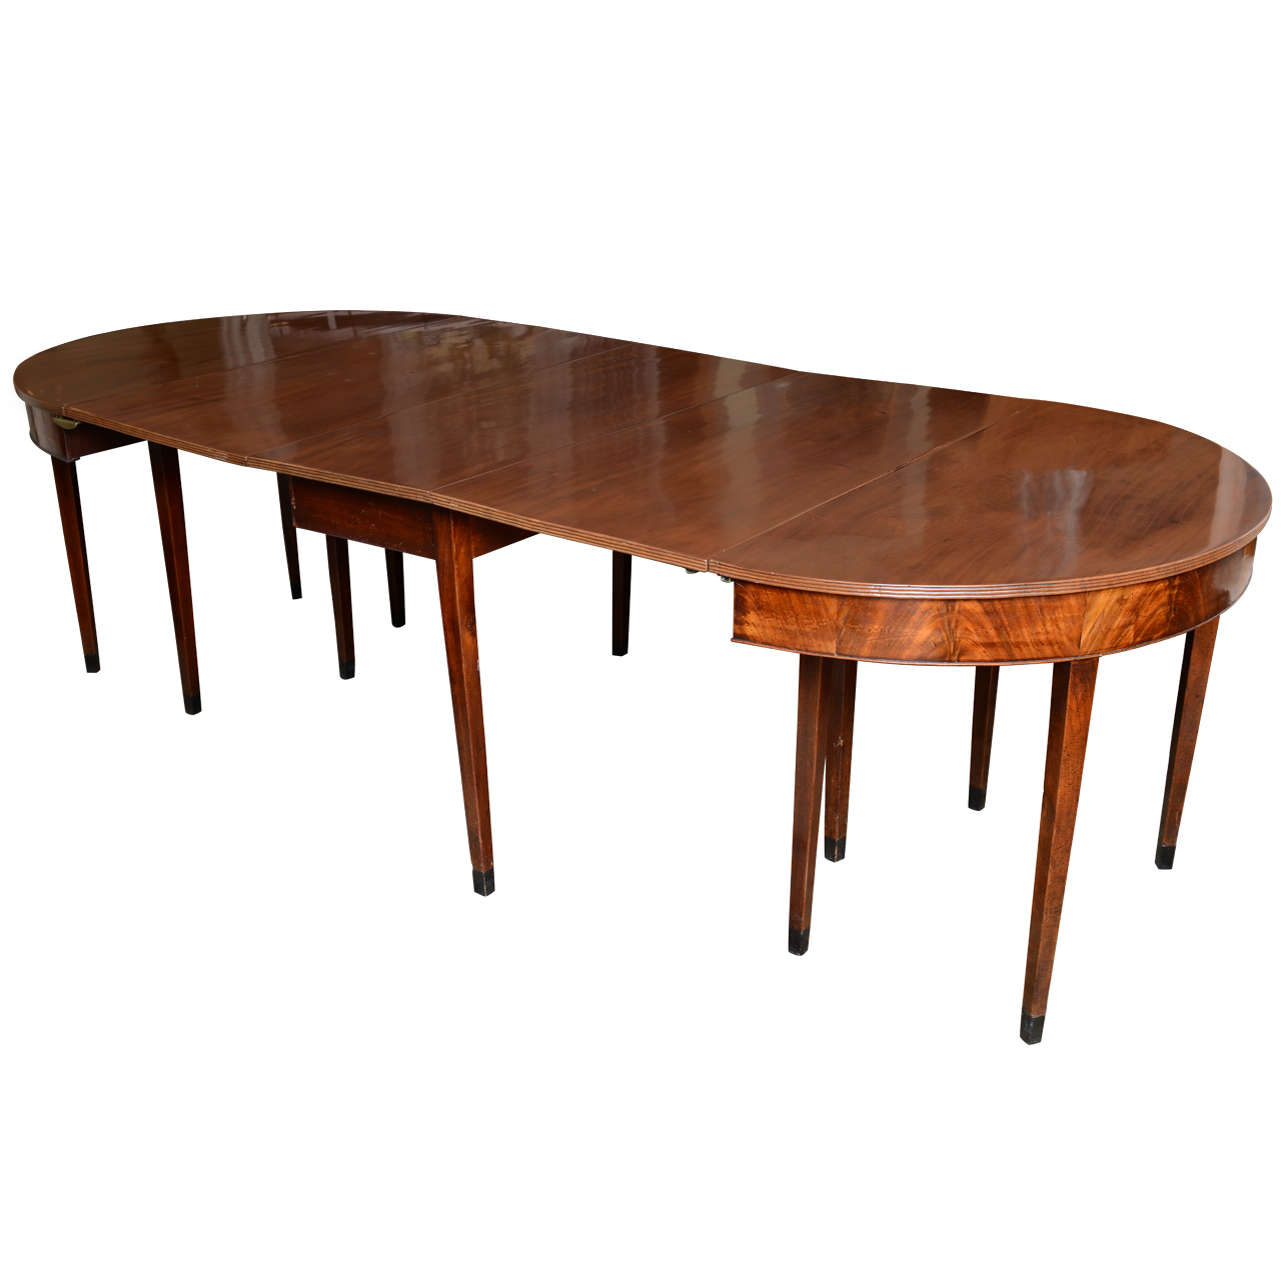 for Mahogany dining room furniture